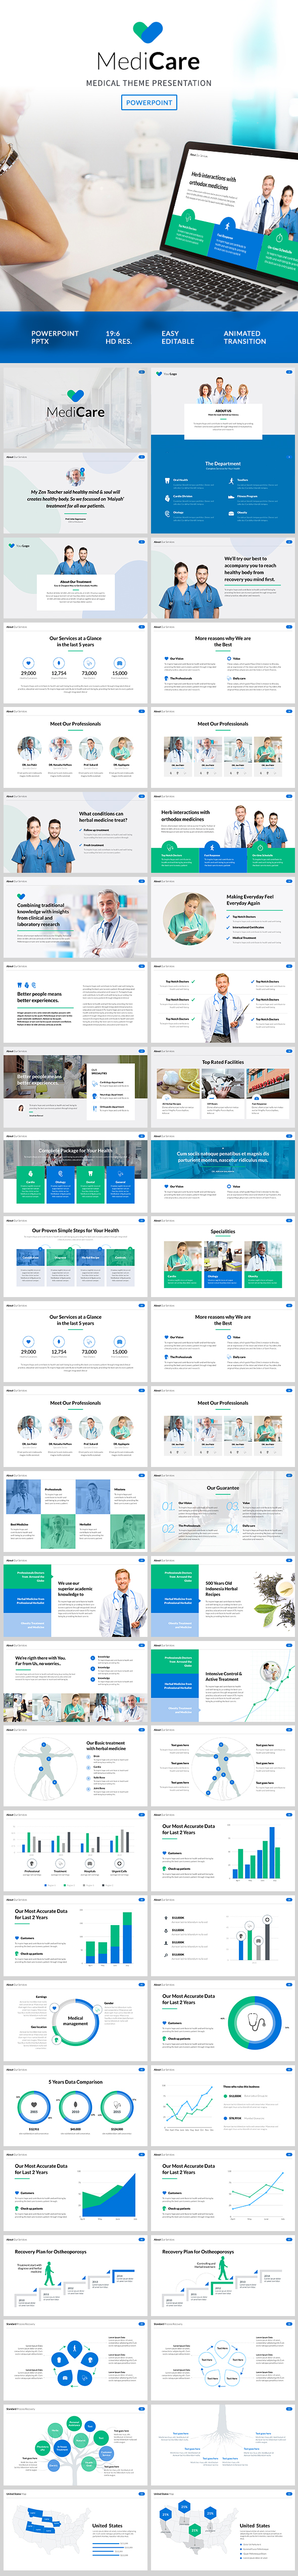 Medicare medical theme powerpoint template by slidehack graphicriver medicare medical theme powerpoint template powerpoint templates presentation templates toneelgroepblik